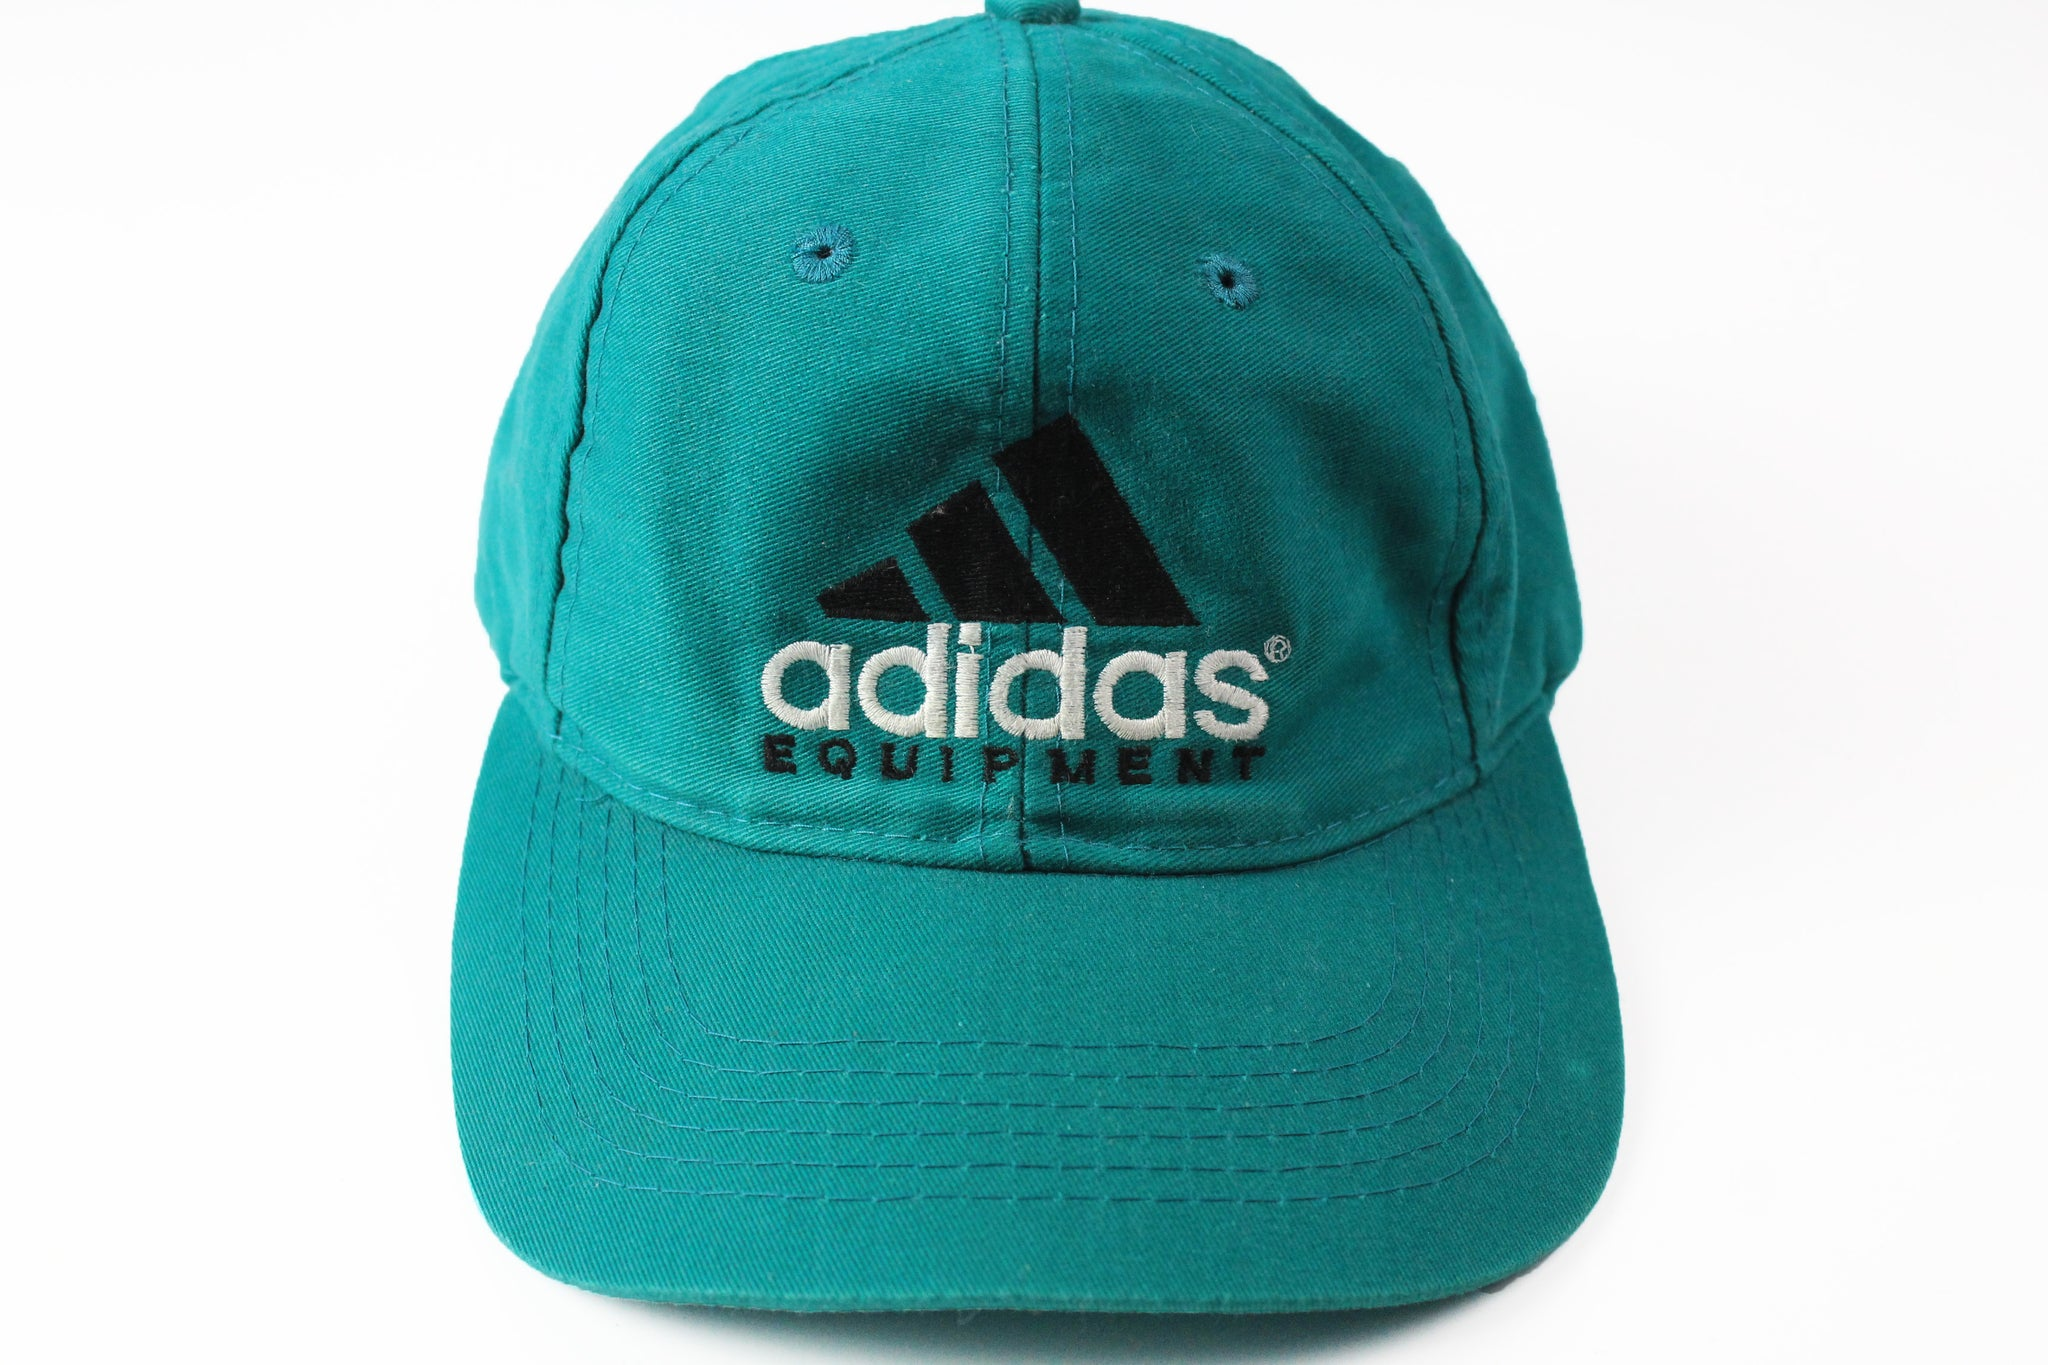 Vintage Adidas Equipment Cap